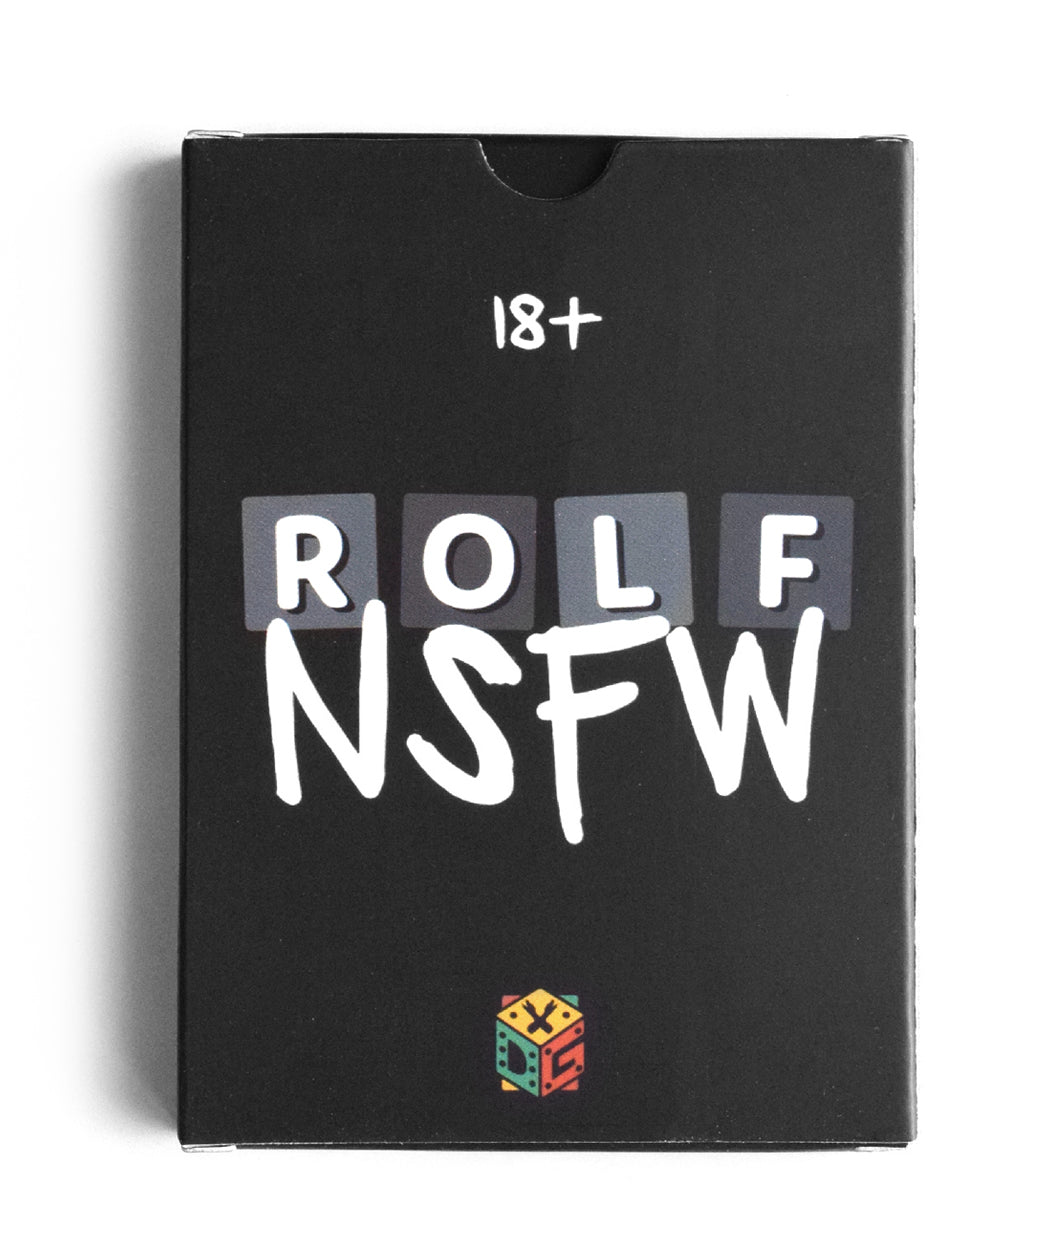 ROLF NSFW Expansion Pack